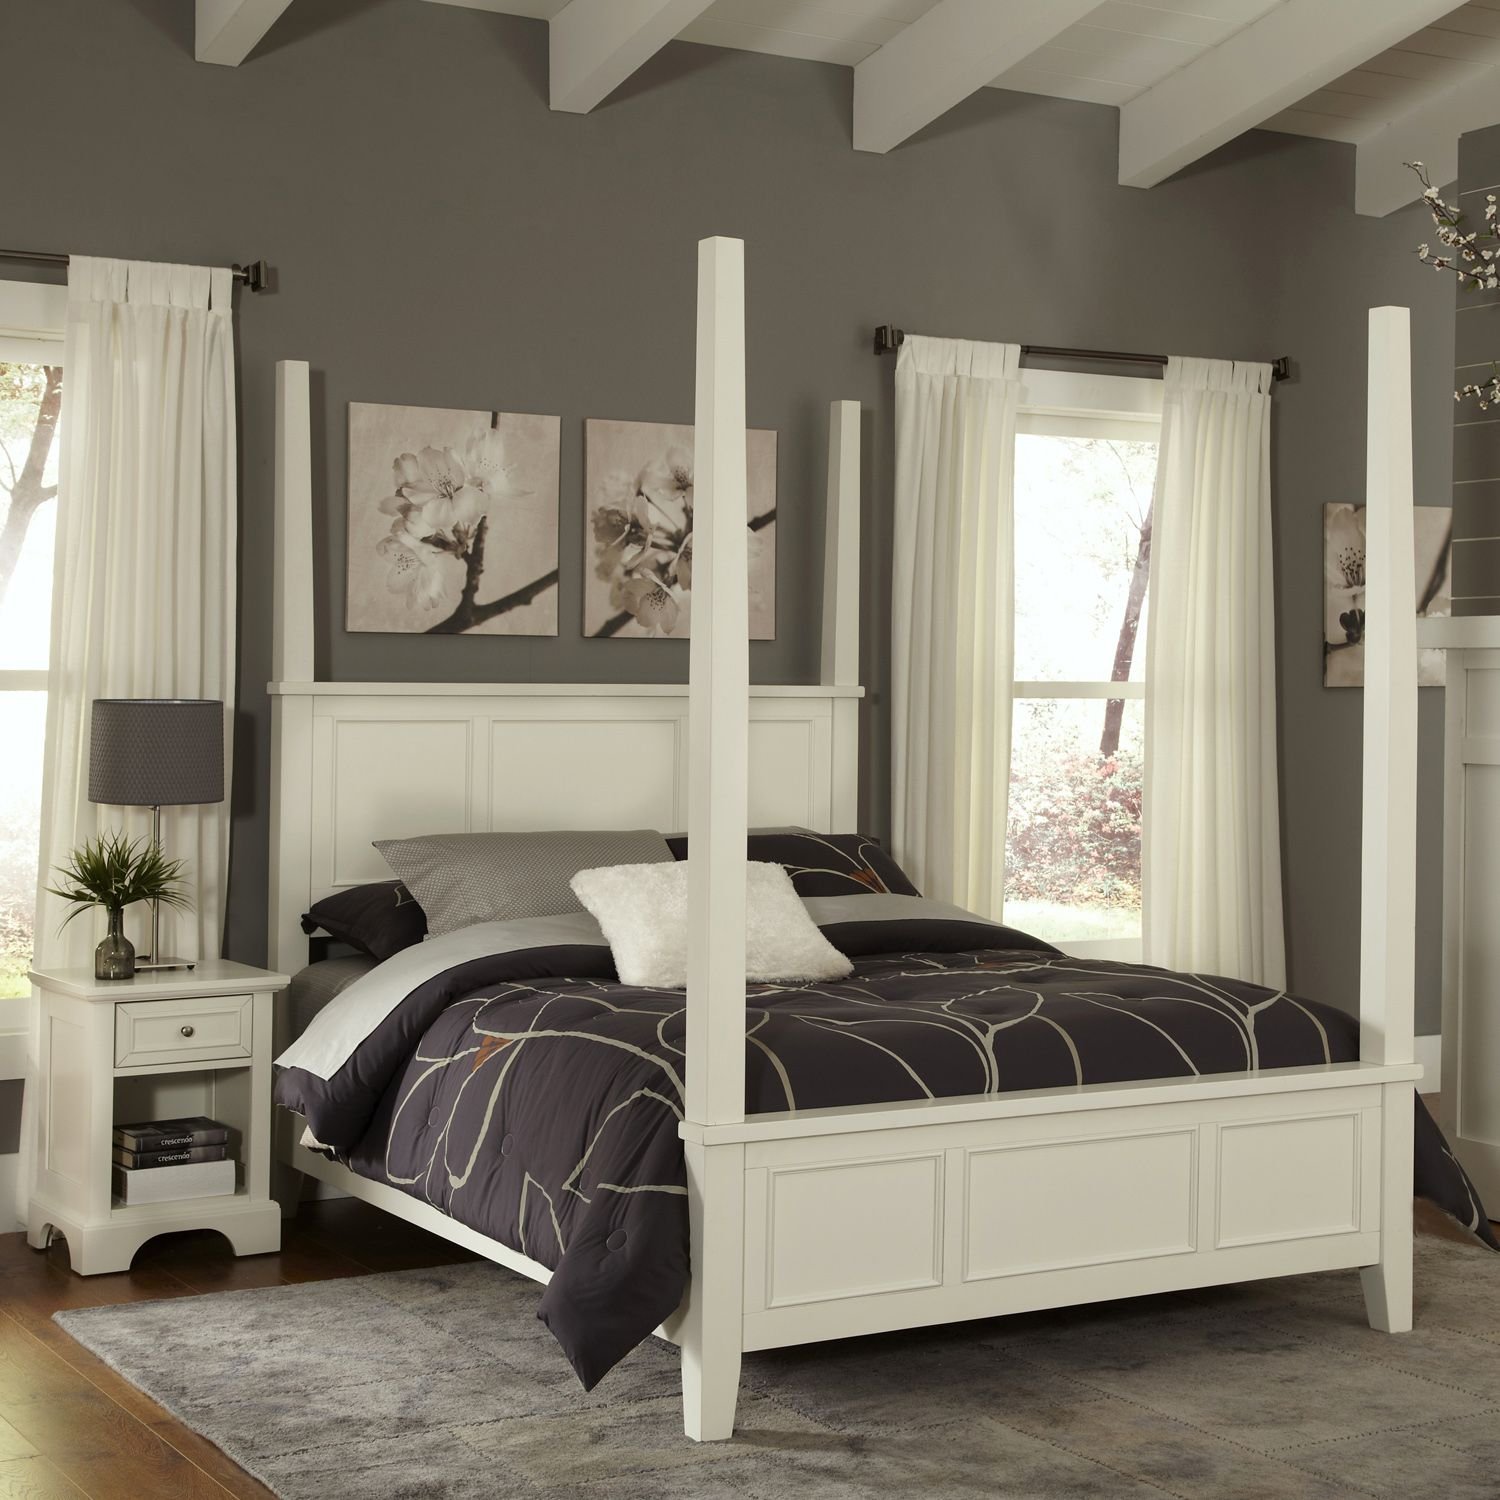 Cool Twin Bedroom Set Online Exclusive gif Home Styles Naples pc Queen Headboard Footboard Frame Poster Bed and